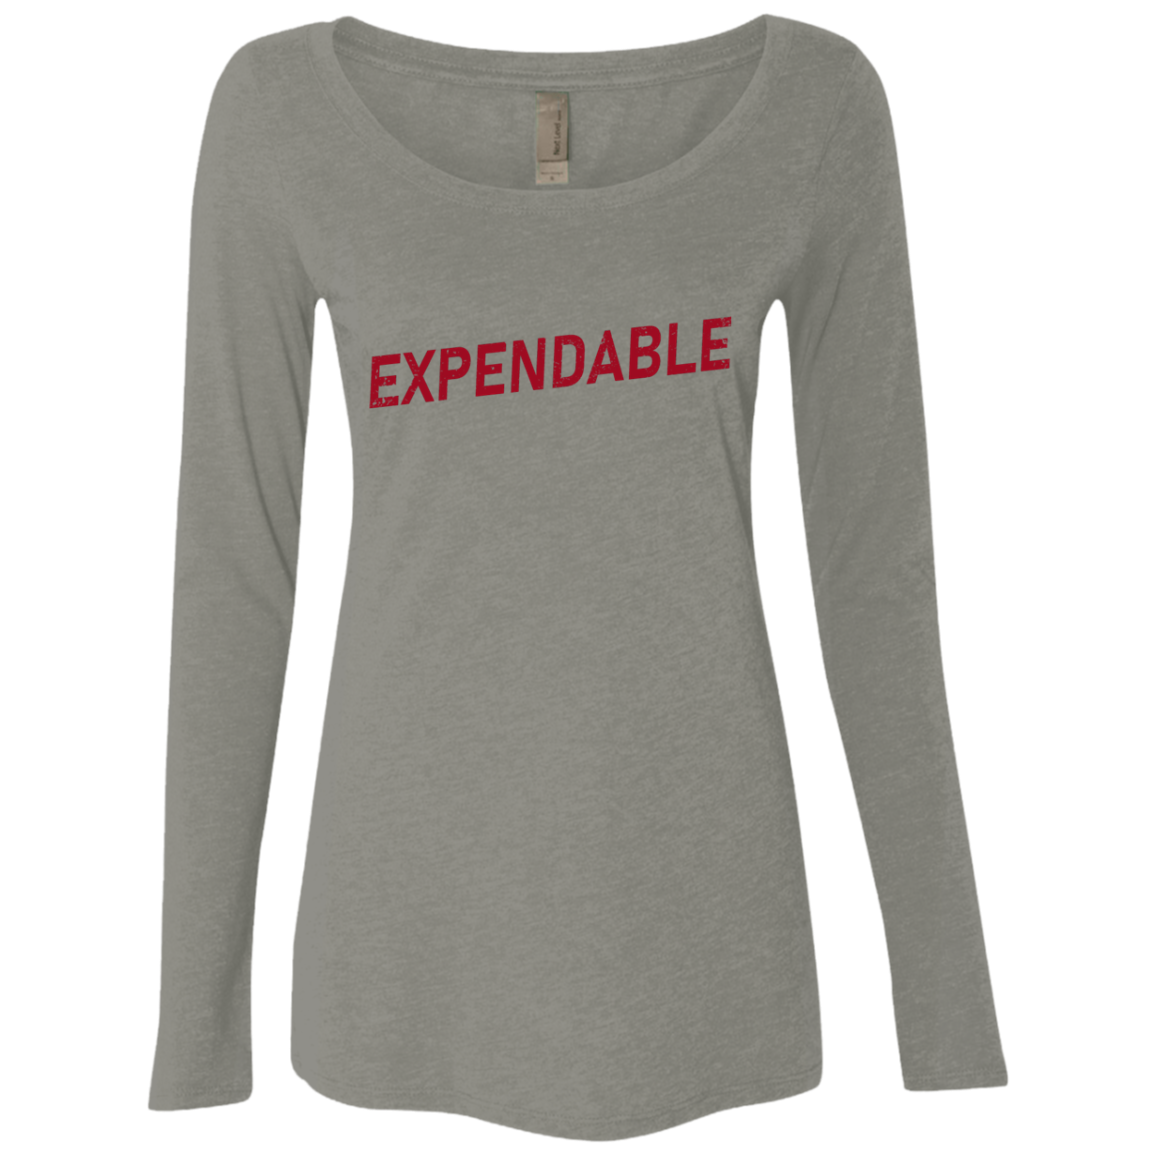 Expendable Women's Long Sleeve Tee